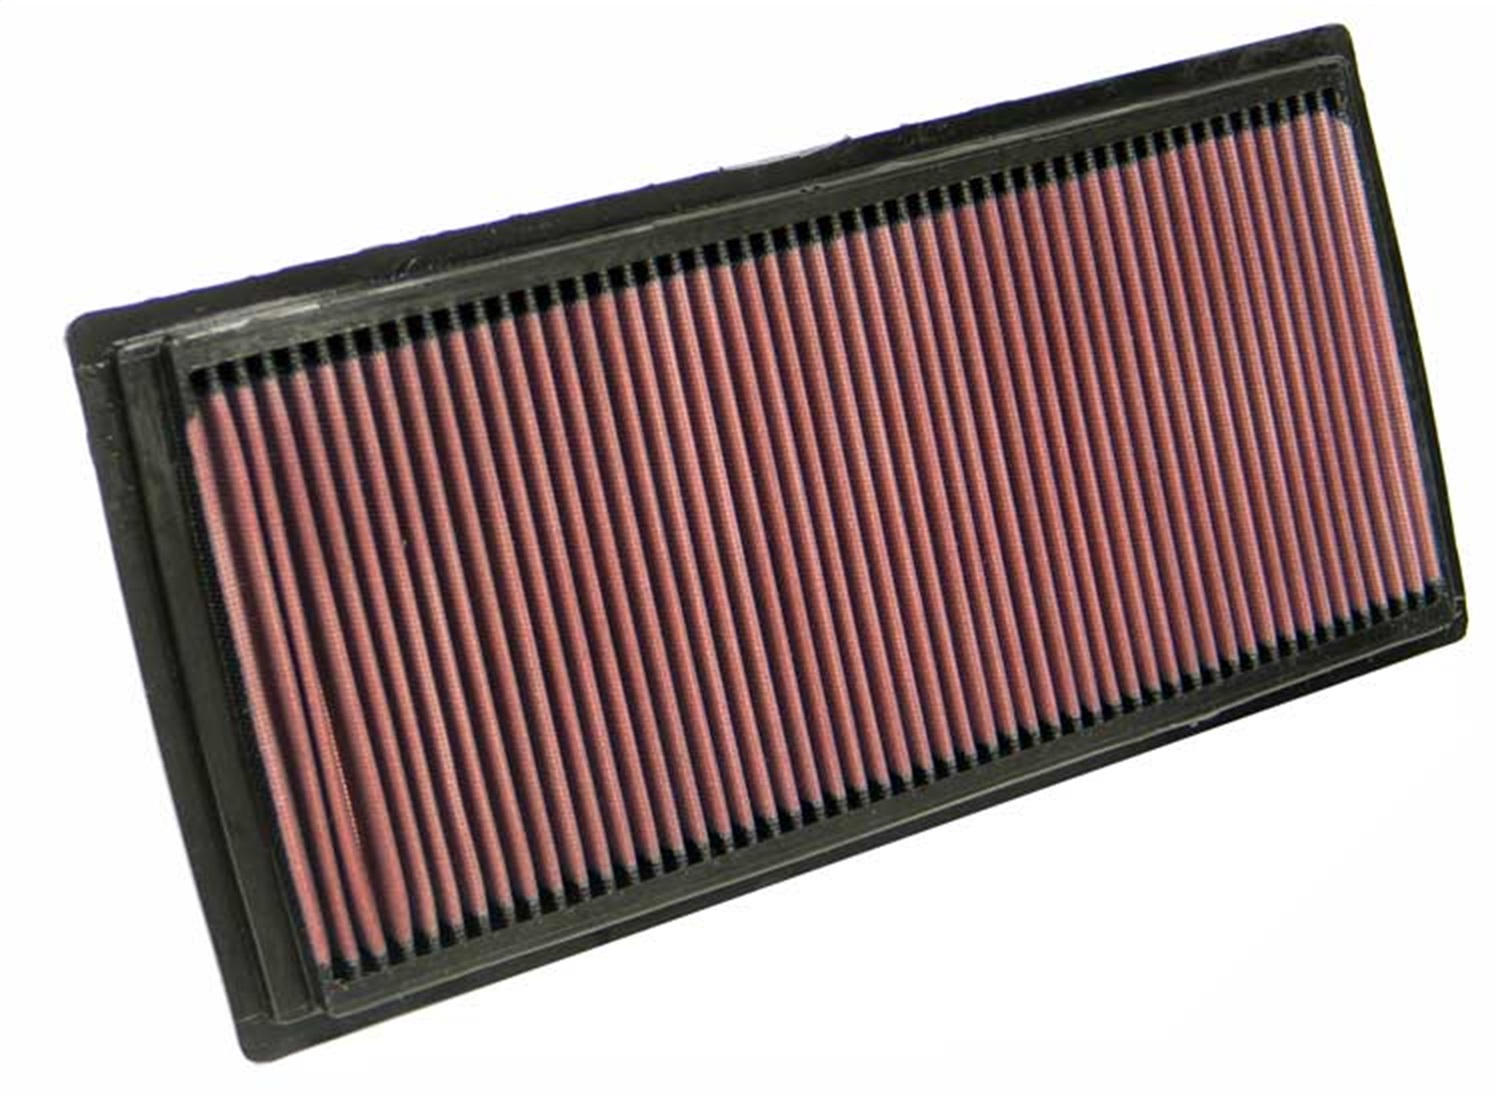 K&N Filters 33-2324 Air Filter Fits 05-15 Equator Frontier 33-2324